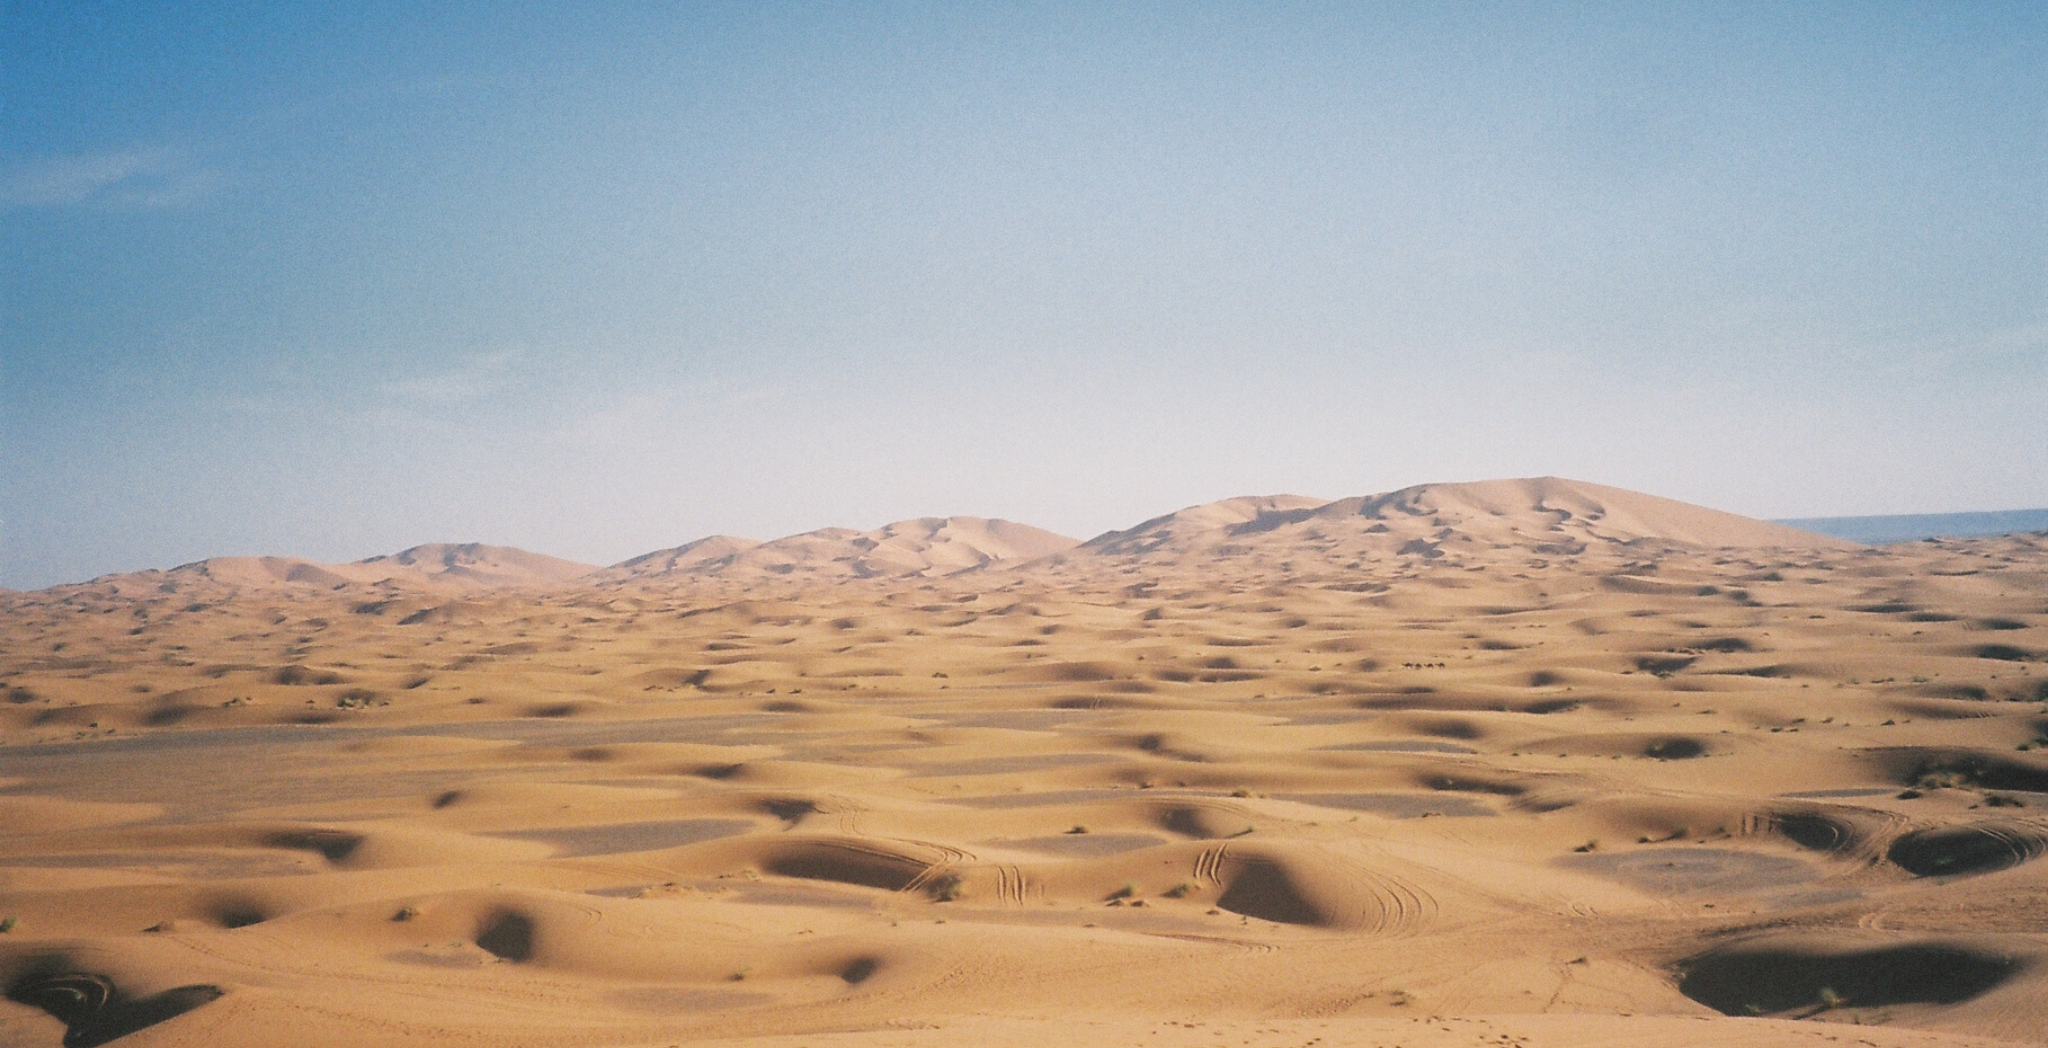 Morocco on film the Sahara Desert